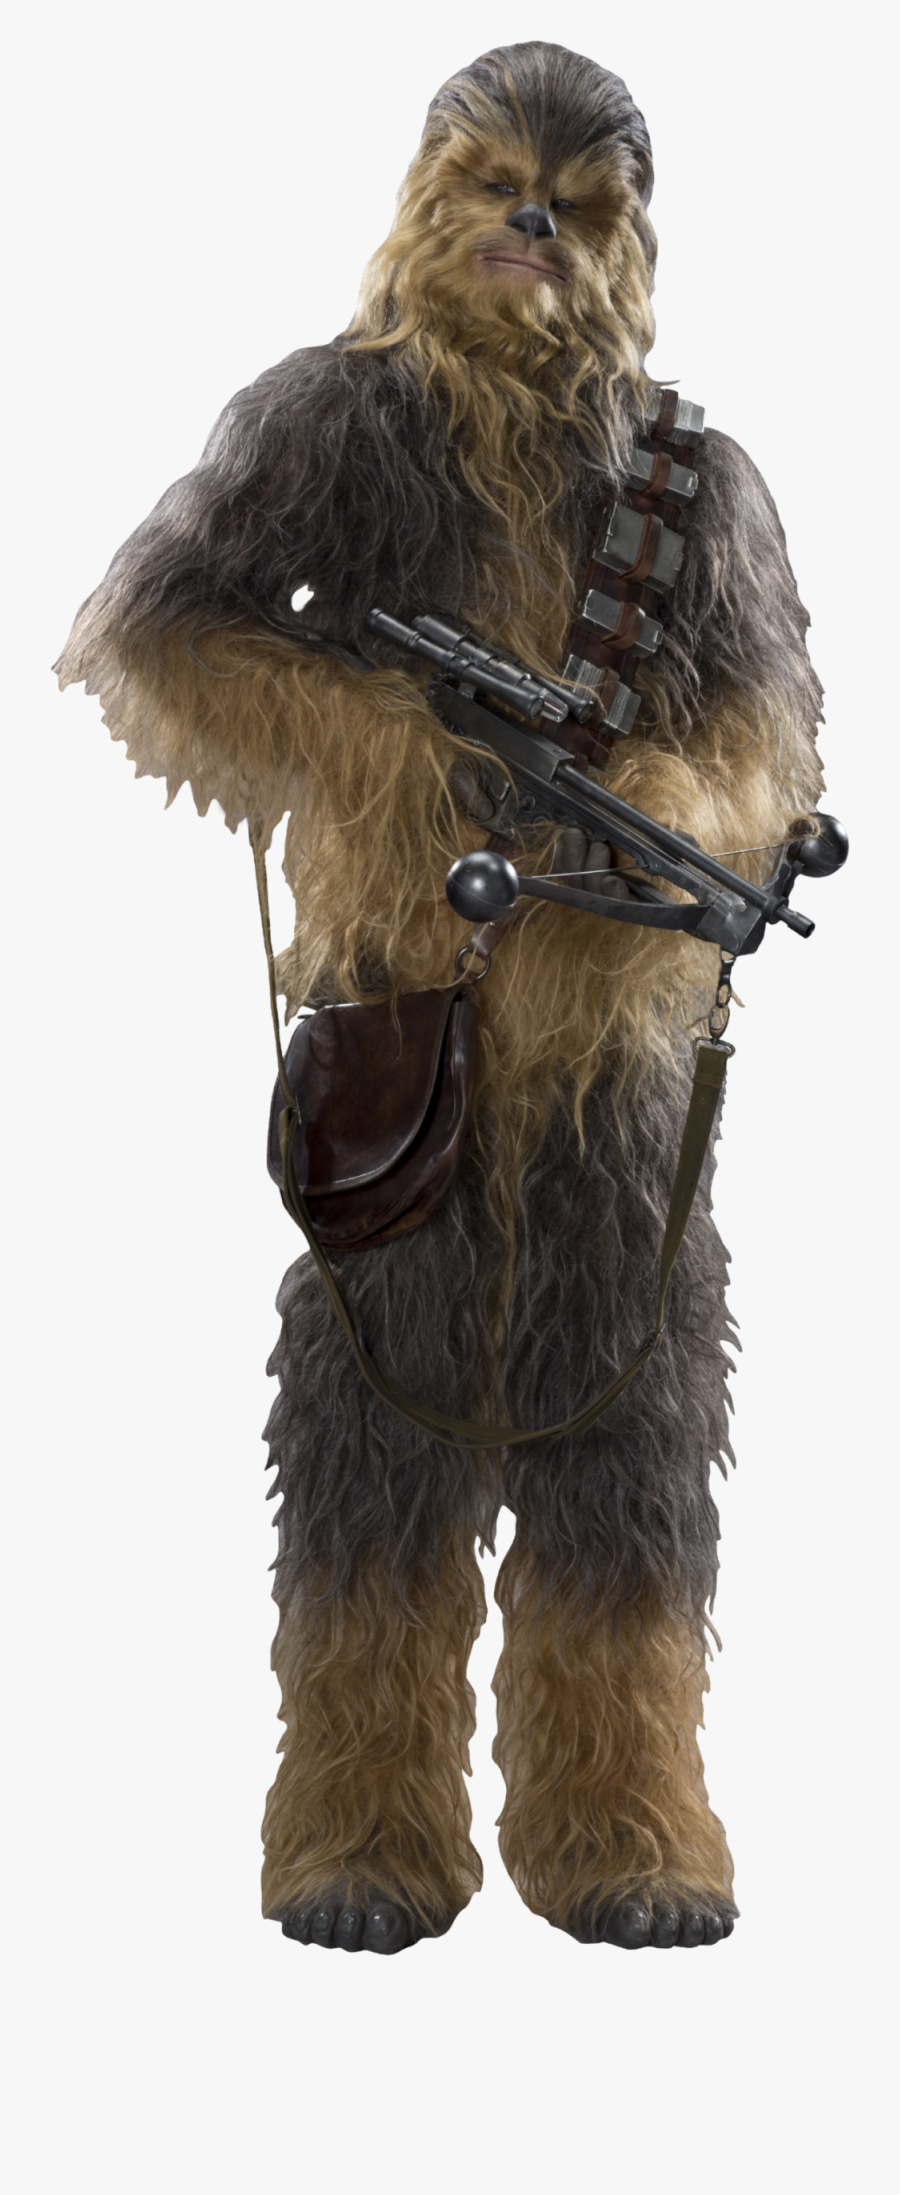 Download Chewbacca Png Clipart 140 - Star Wars Chewbacca Png, Transparent Clipart